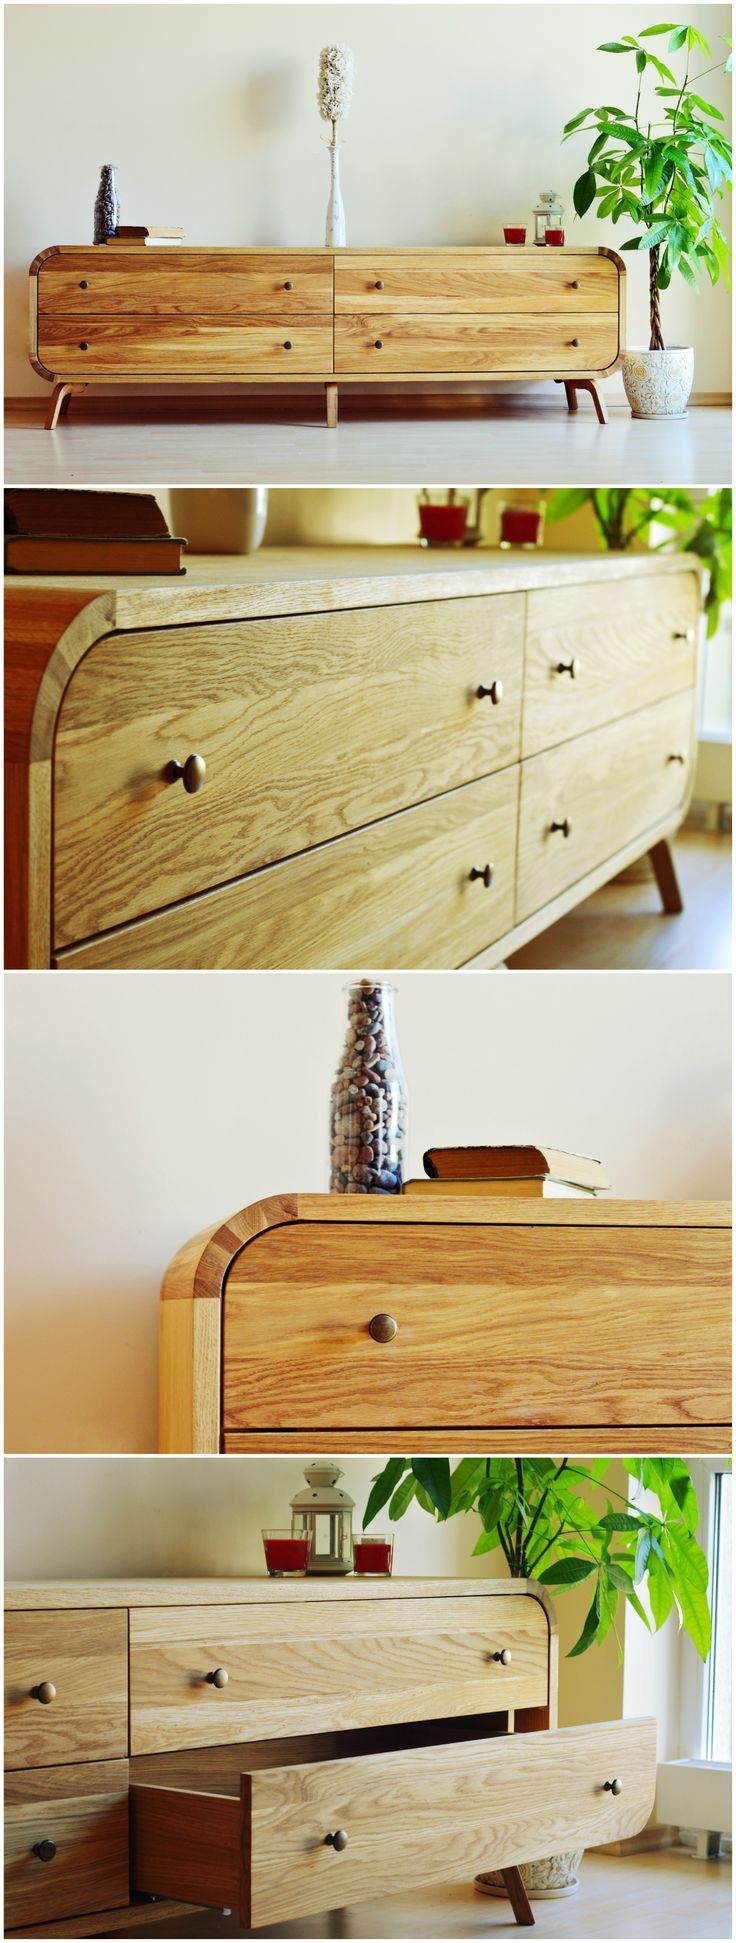 Chest of Drawers Dresser Luxury Furniture Cabinet Low Cabinet TV Console Midcentury Living Room Oak Solid Board Modern Handmade Wood cabinet